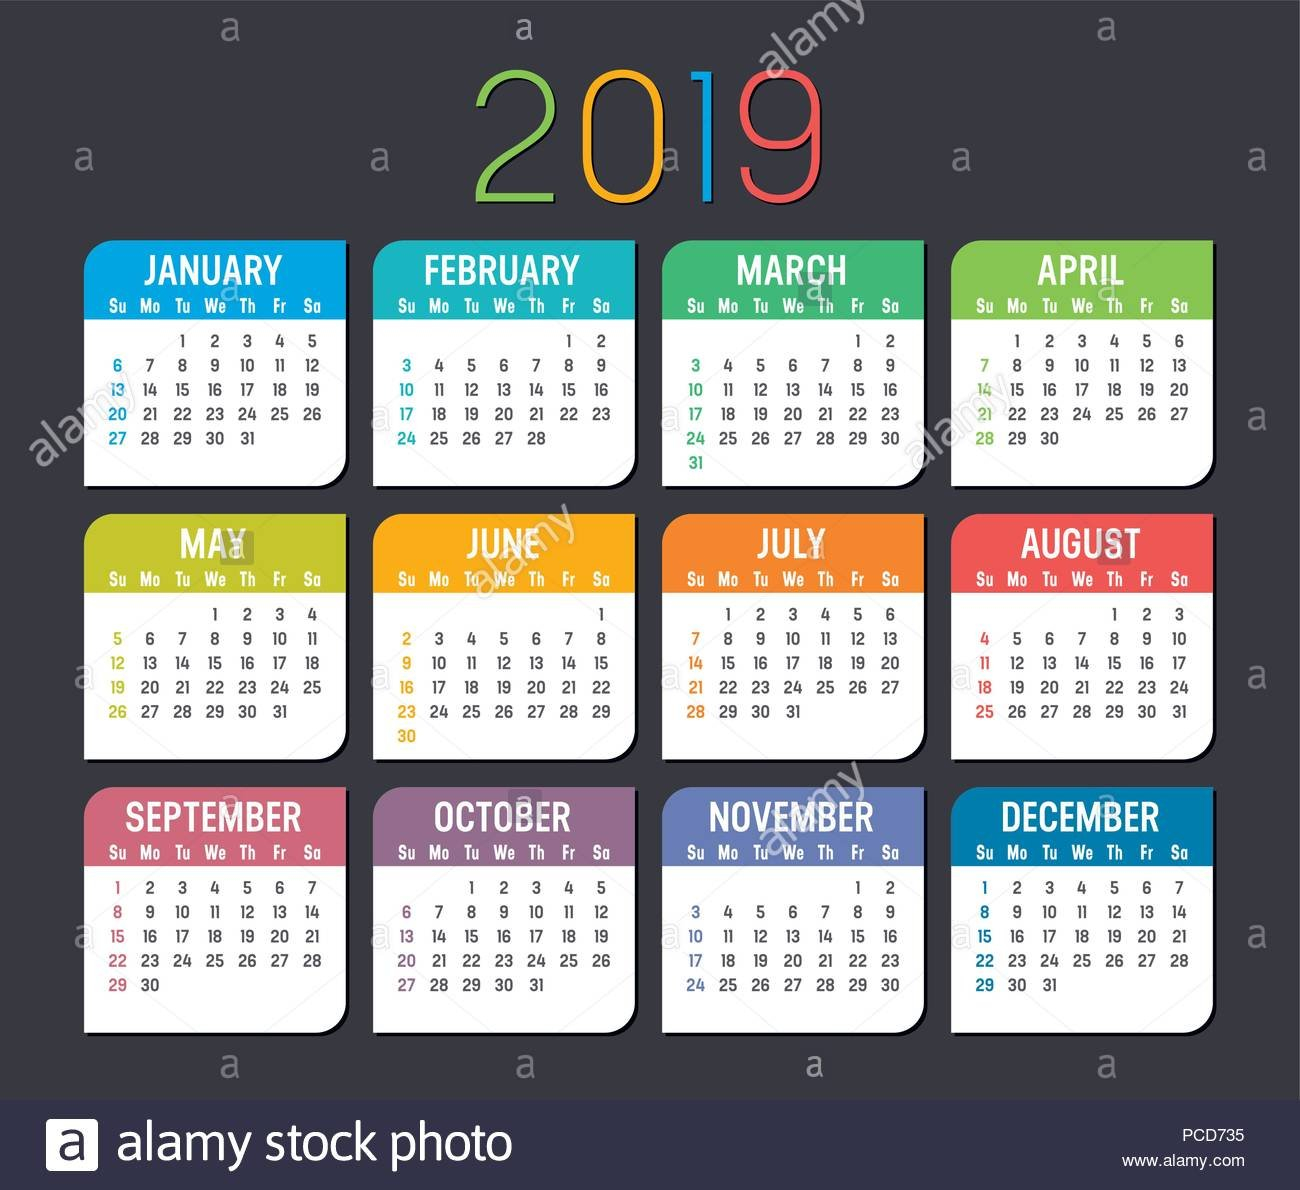 Colorful Year 2019 Calendar Isolated On A Dark Background Stock Calendar 2019 Background